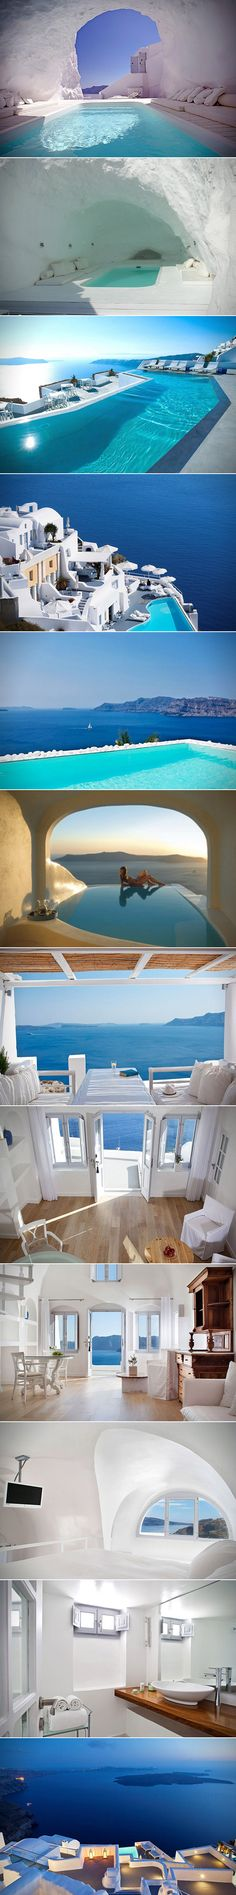 The Katikies Hotel on the beautiful island of Santorini sits on a cliff overlooking the Santorini caldera basin, offering heart stopping views of the Aegean Sea